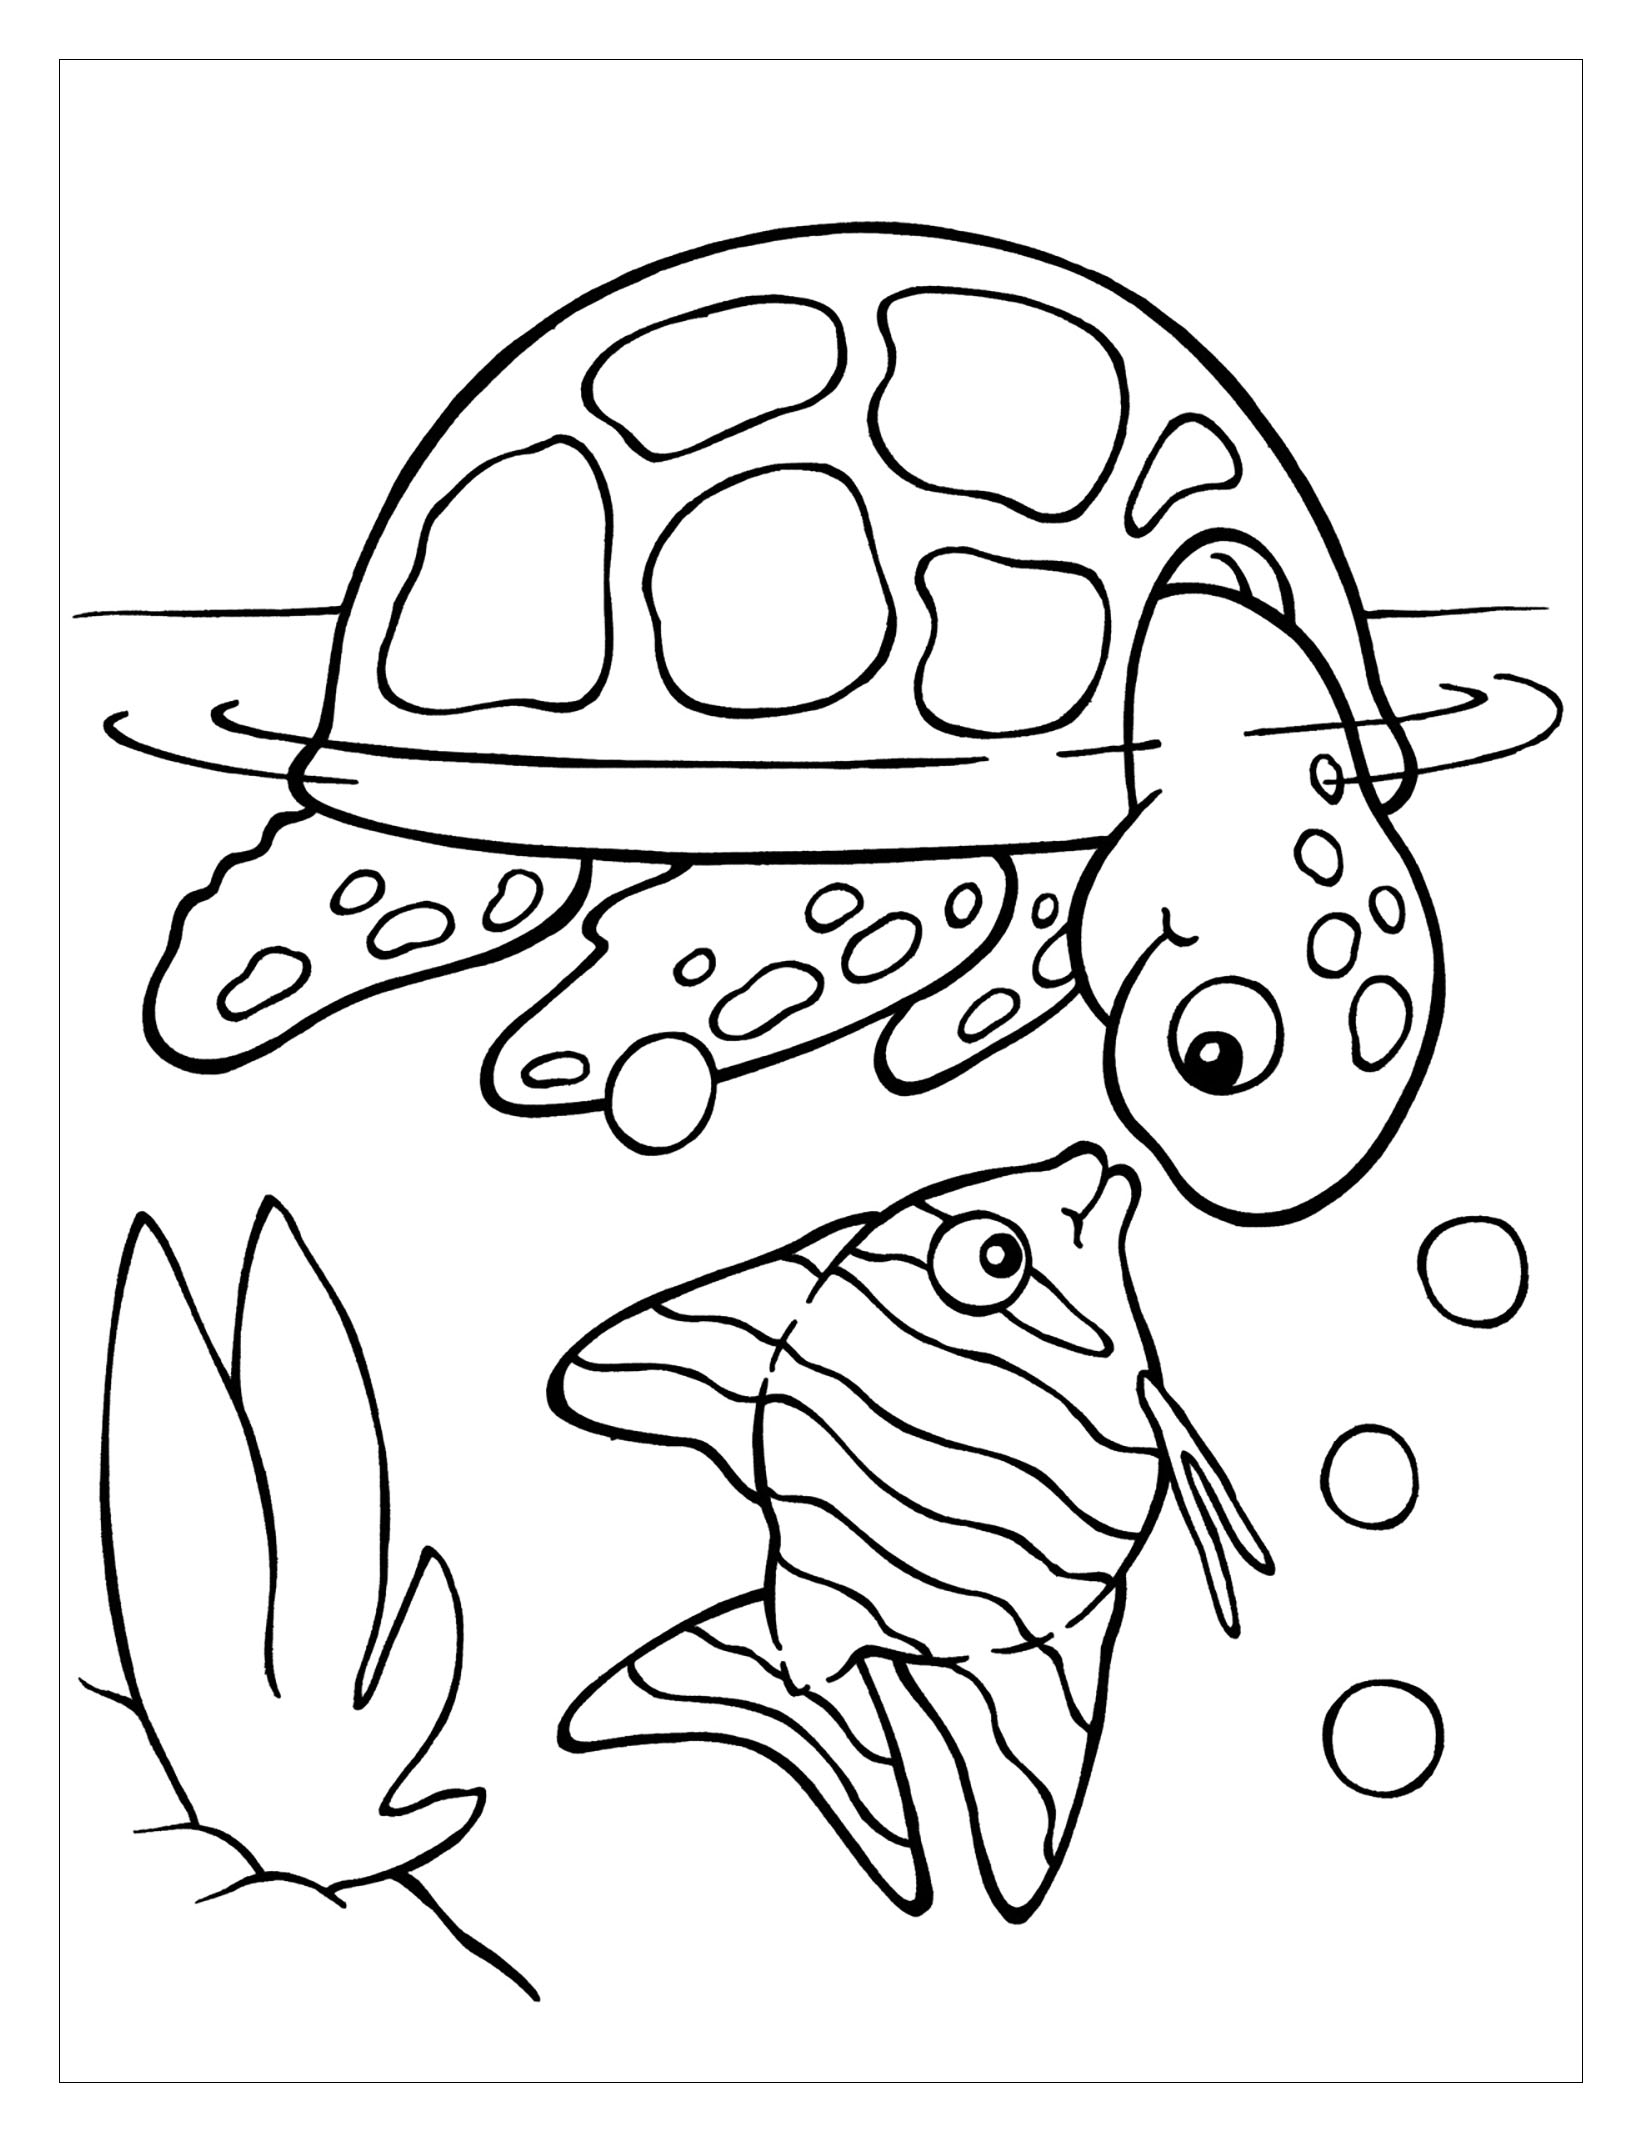 tortoise coloring page cute baby turtle coloring pages bestappsforkidscom tortoise page coloring